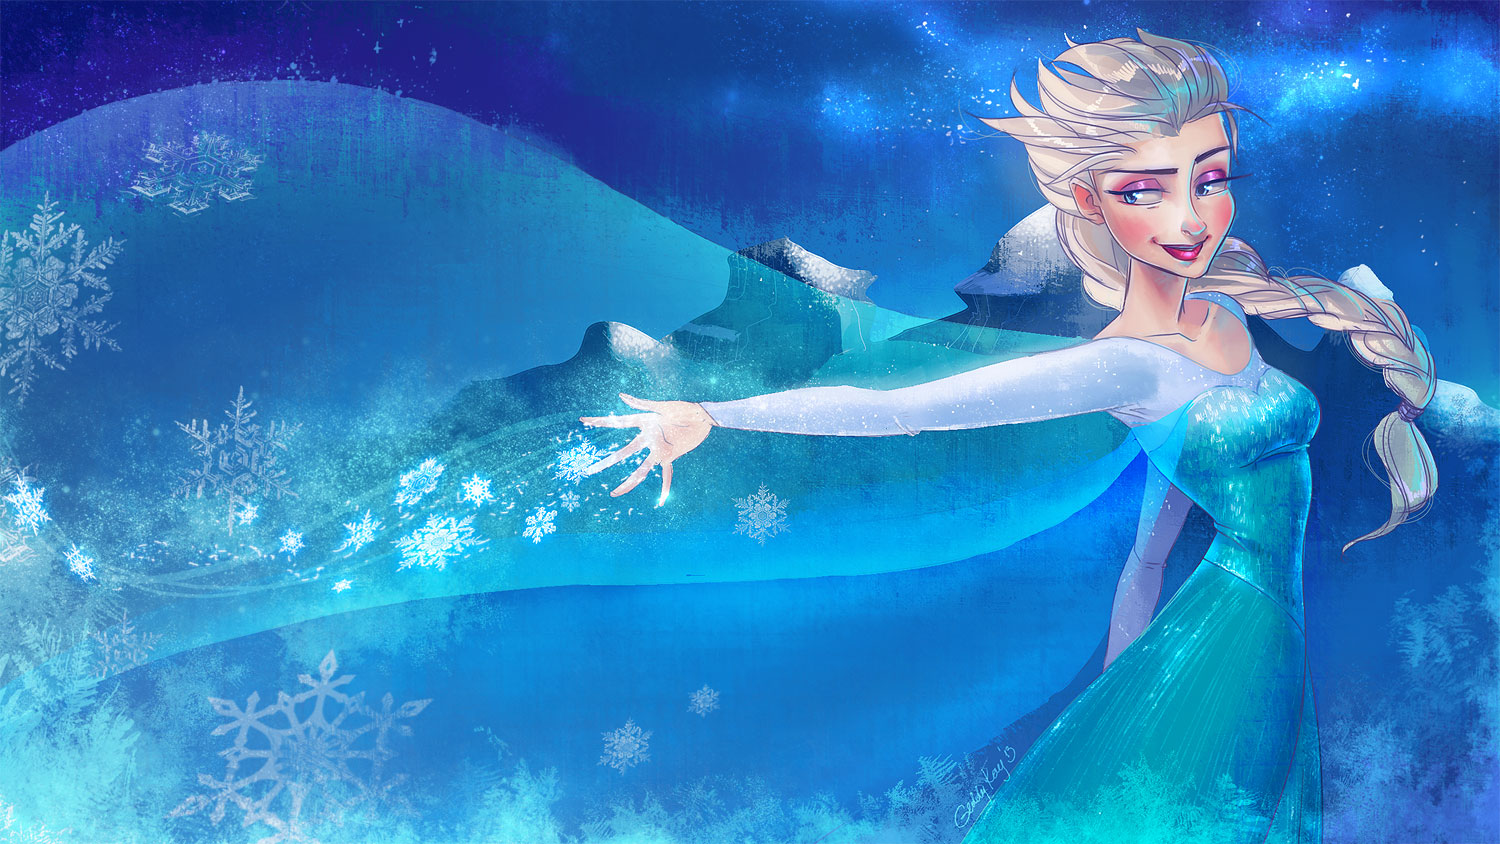 Frozen Elsa Anna Digital Fan Art Wallpapers 1500x844